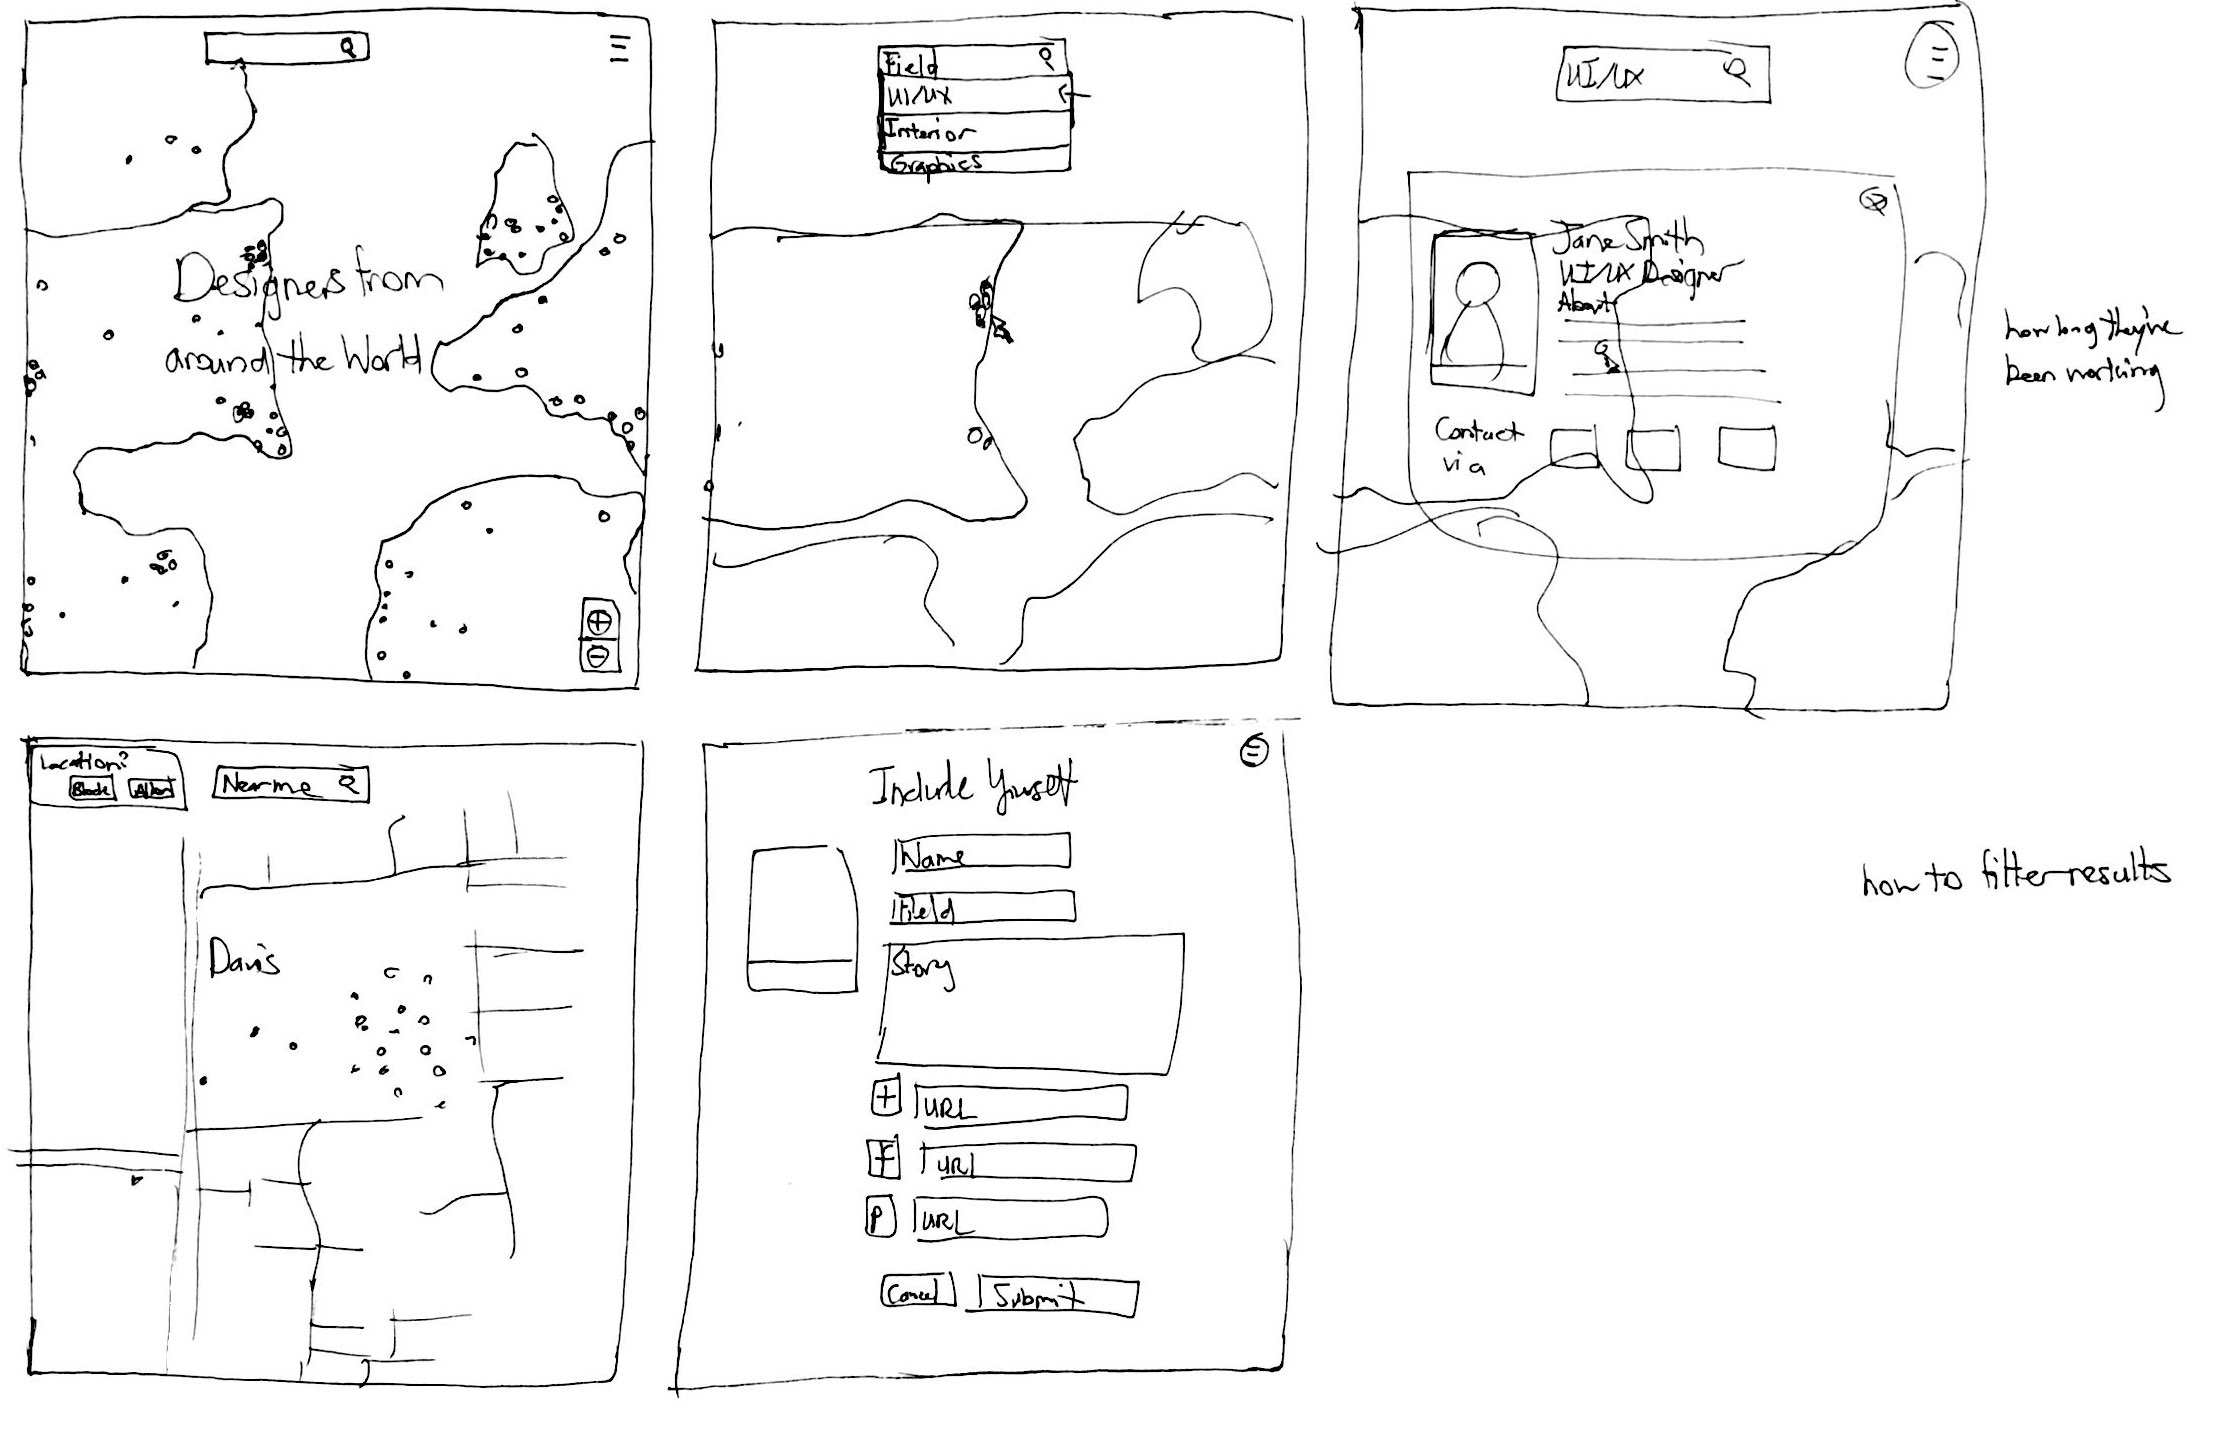 Storyboarding - After getting a better idea of what type of platform I wanted to create, I needed to refine my idea. At first I wanted to involve designers from around the world, but with the limited data I could source, I kept within the U.S. region.